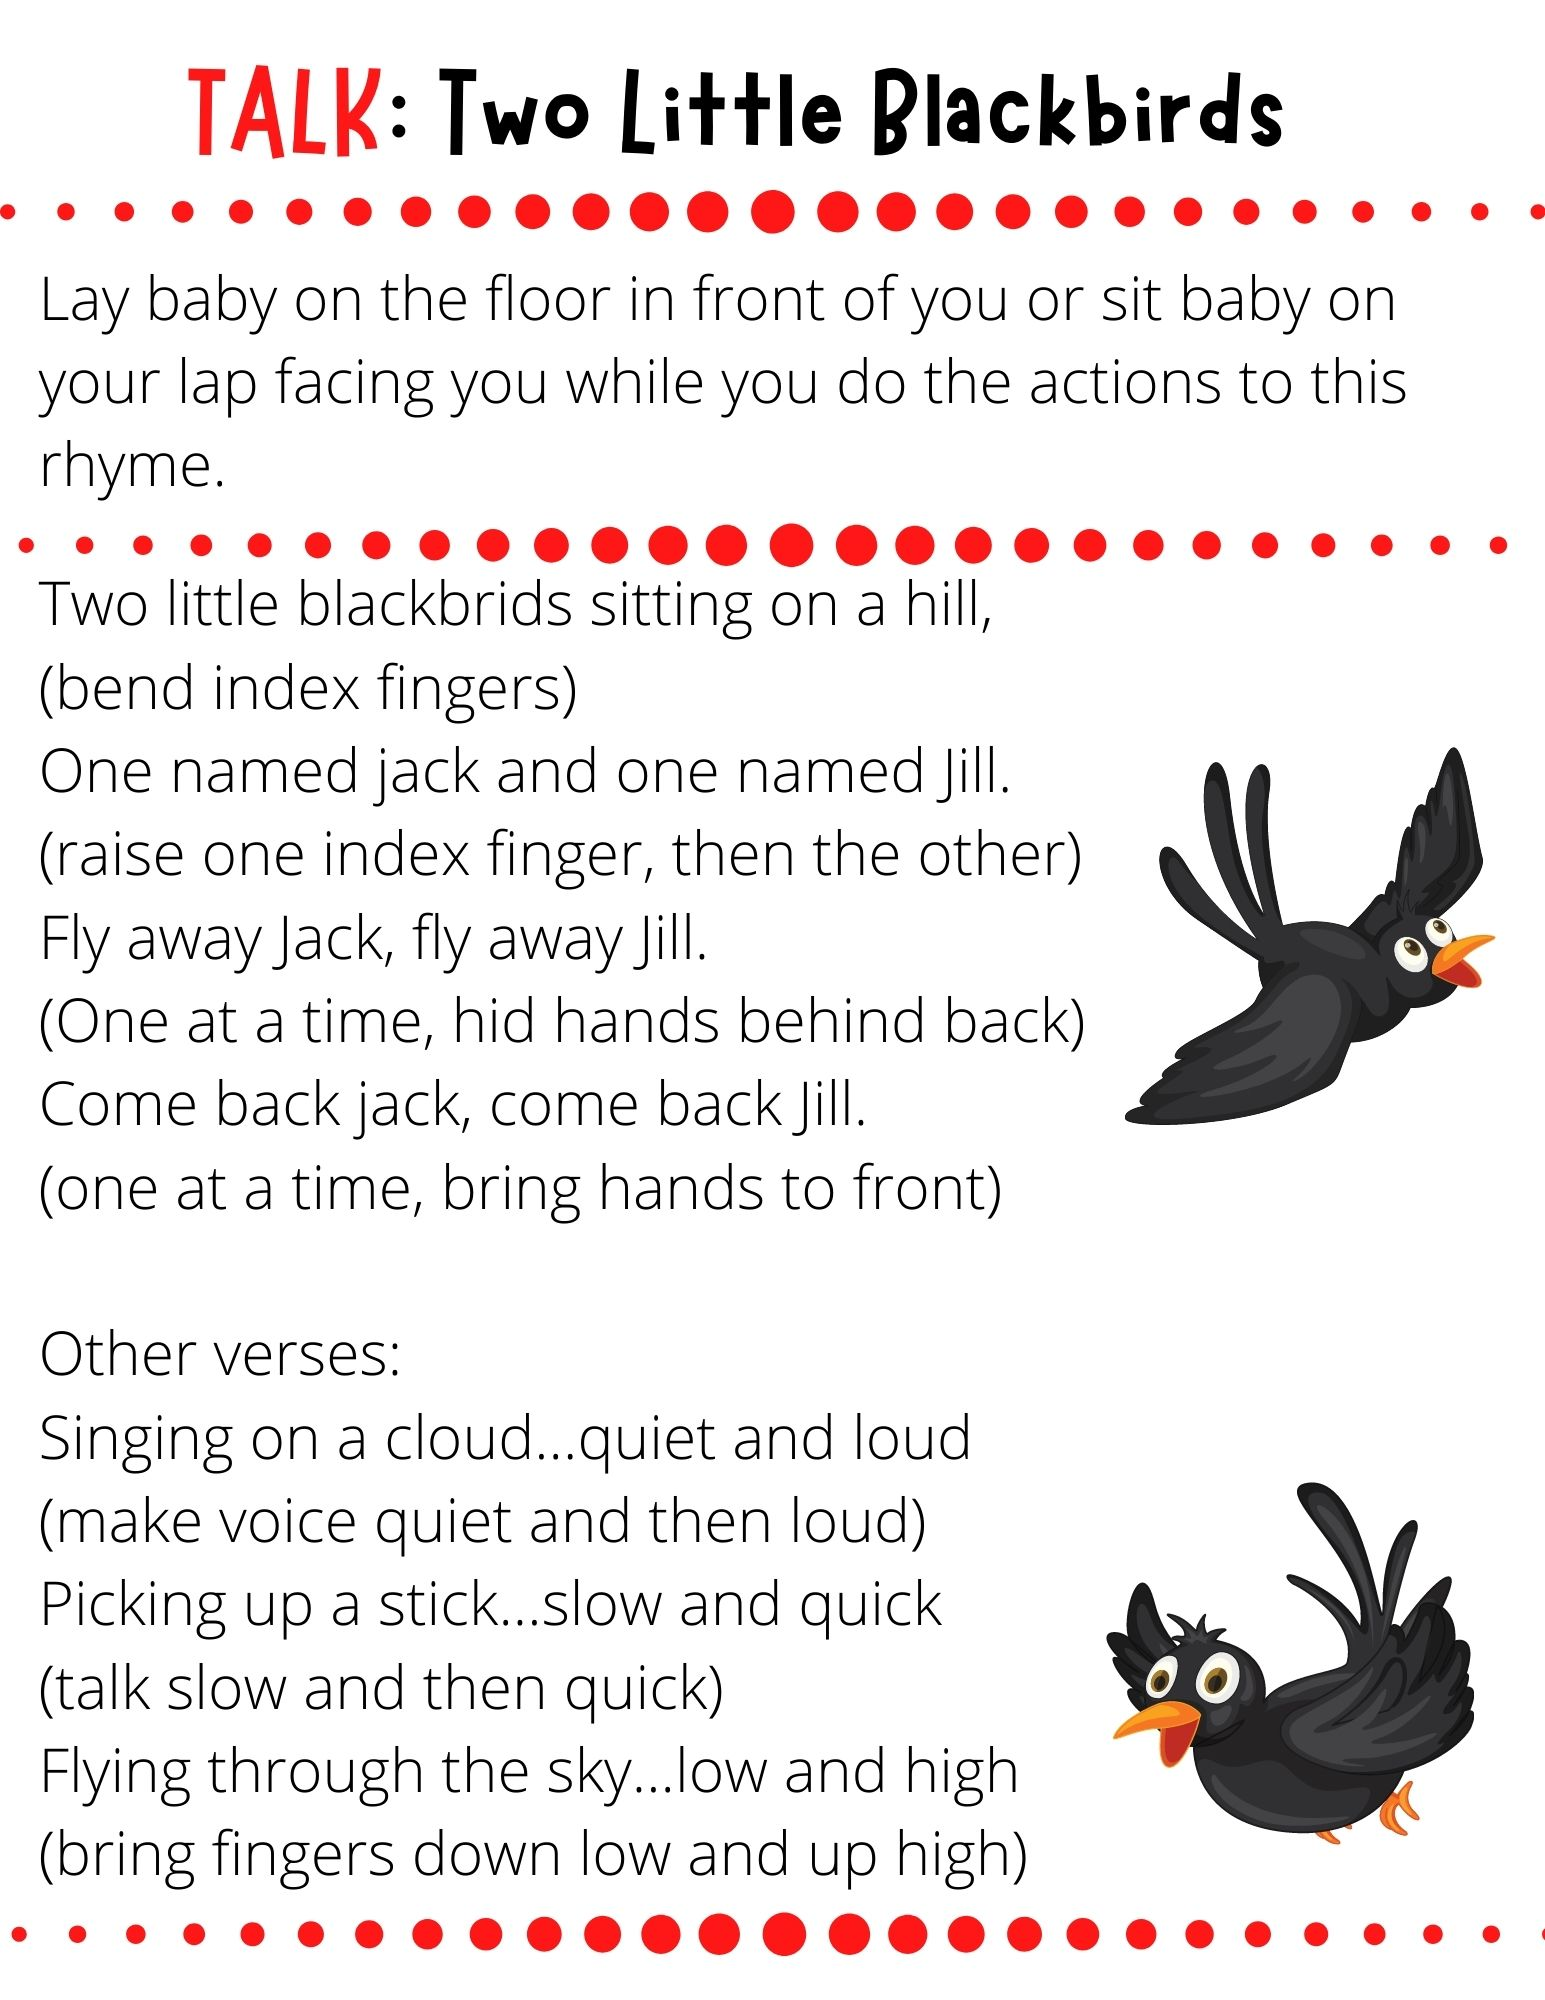 Two little blackbrids sitting on a hill,  (bend index fingers) One named jack and one named Jill. (raise one index finger, then the other) Fly away Jack, fly away Jill. (One at a time, hid hands behind back) Come back jack, come back Jill. (one at a time, bring hands to front)  Other verses: Singing on a cloud...quiet and loud (make voice quiet and then loud) Picking up a stick...slow and quick (talk slow and then quick) Flying through the sky...low and high (bring fingers down low and up high)